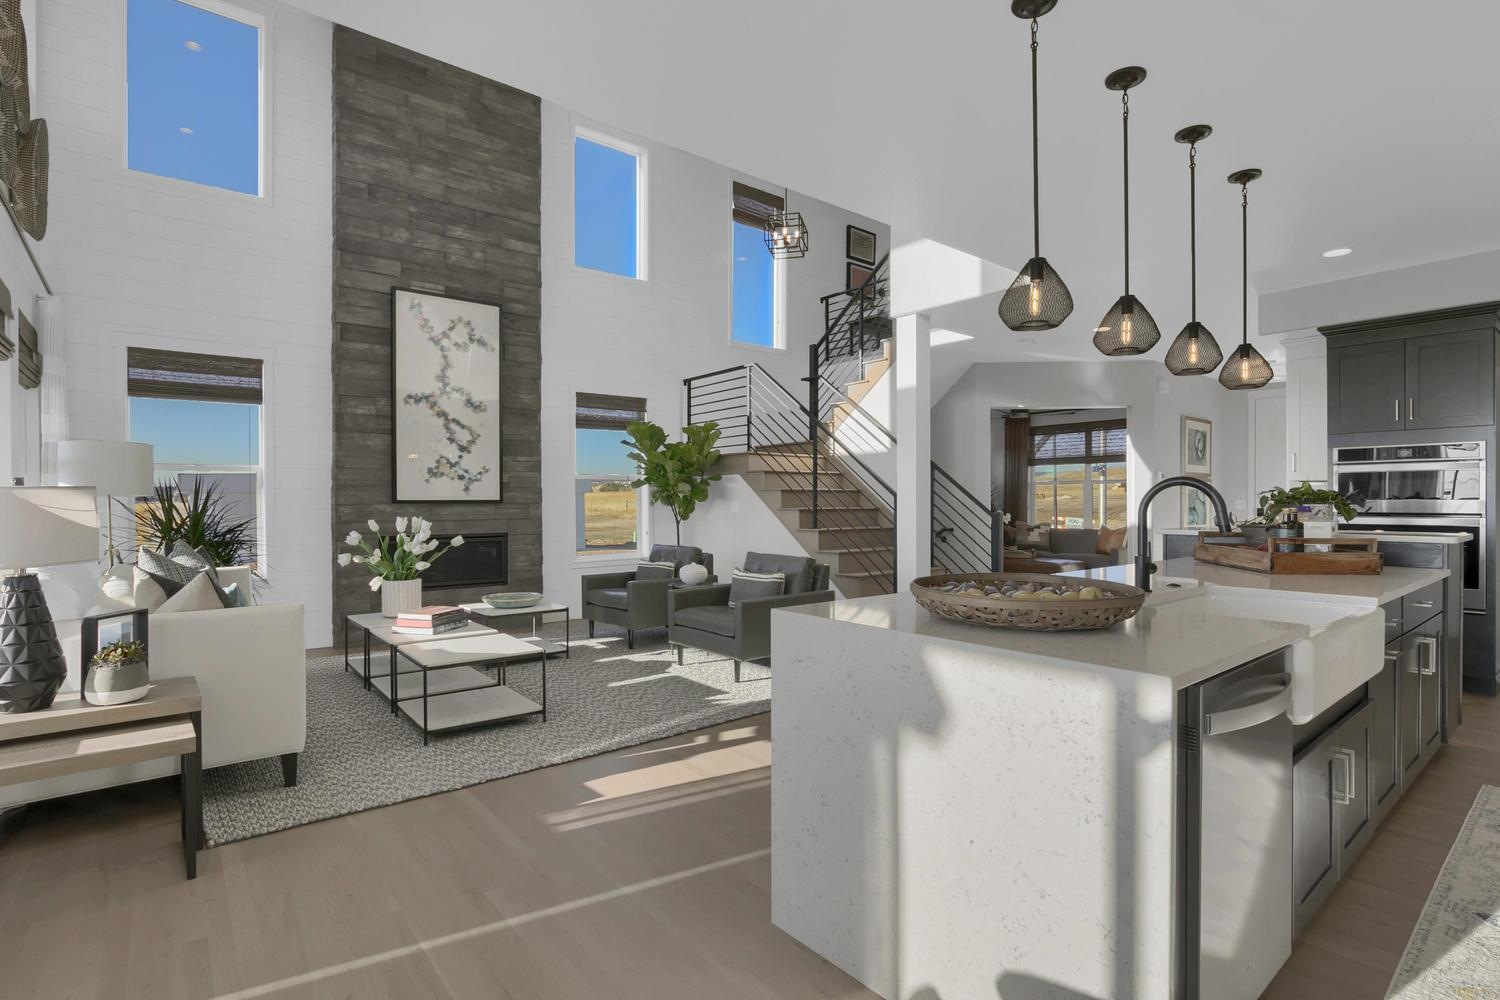 Living Area featured in the Culebra By Keller Homes, A Toll Bros. Co. in Colorado Springs, CO